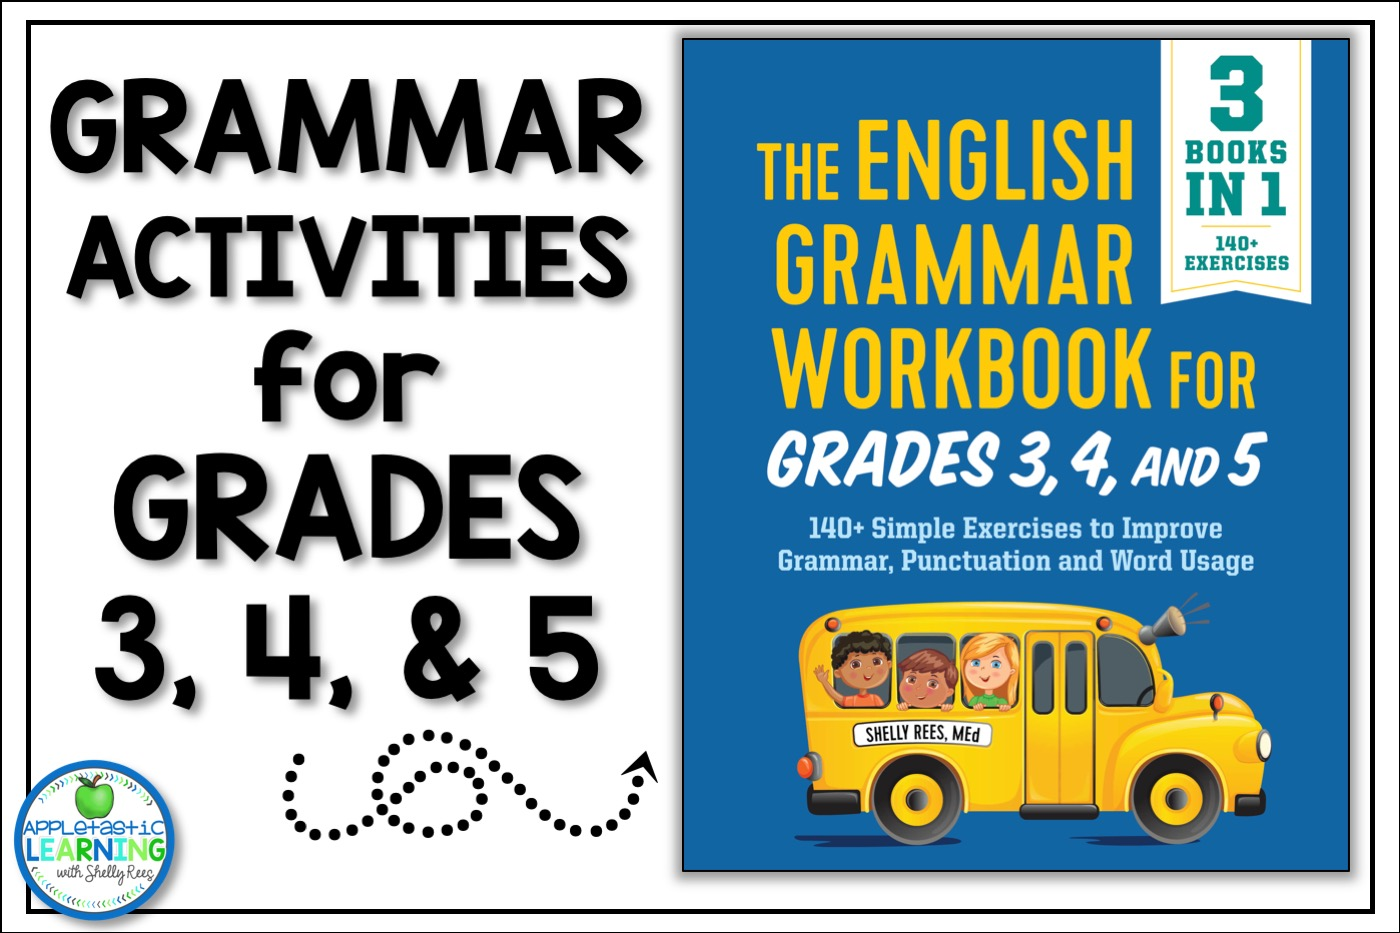 The English Grammar Workbook for Grades 3, 4 and 5